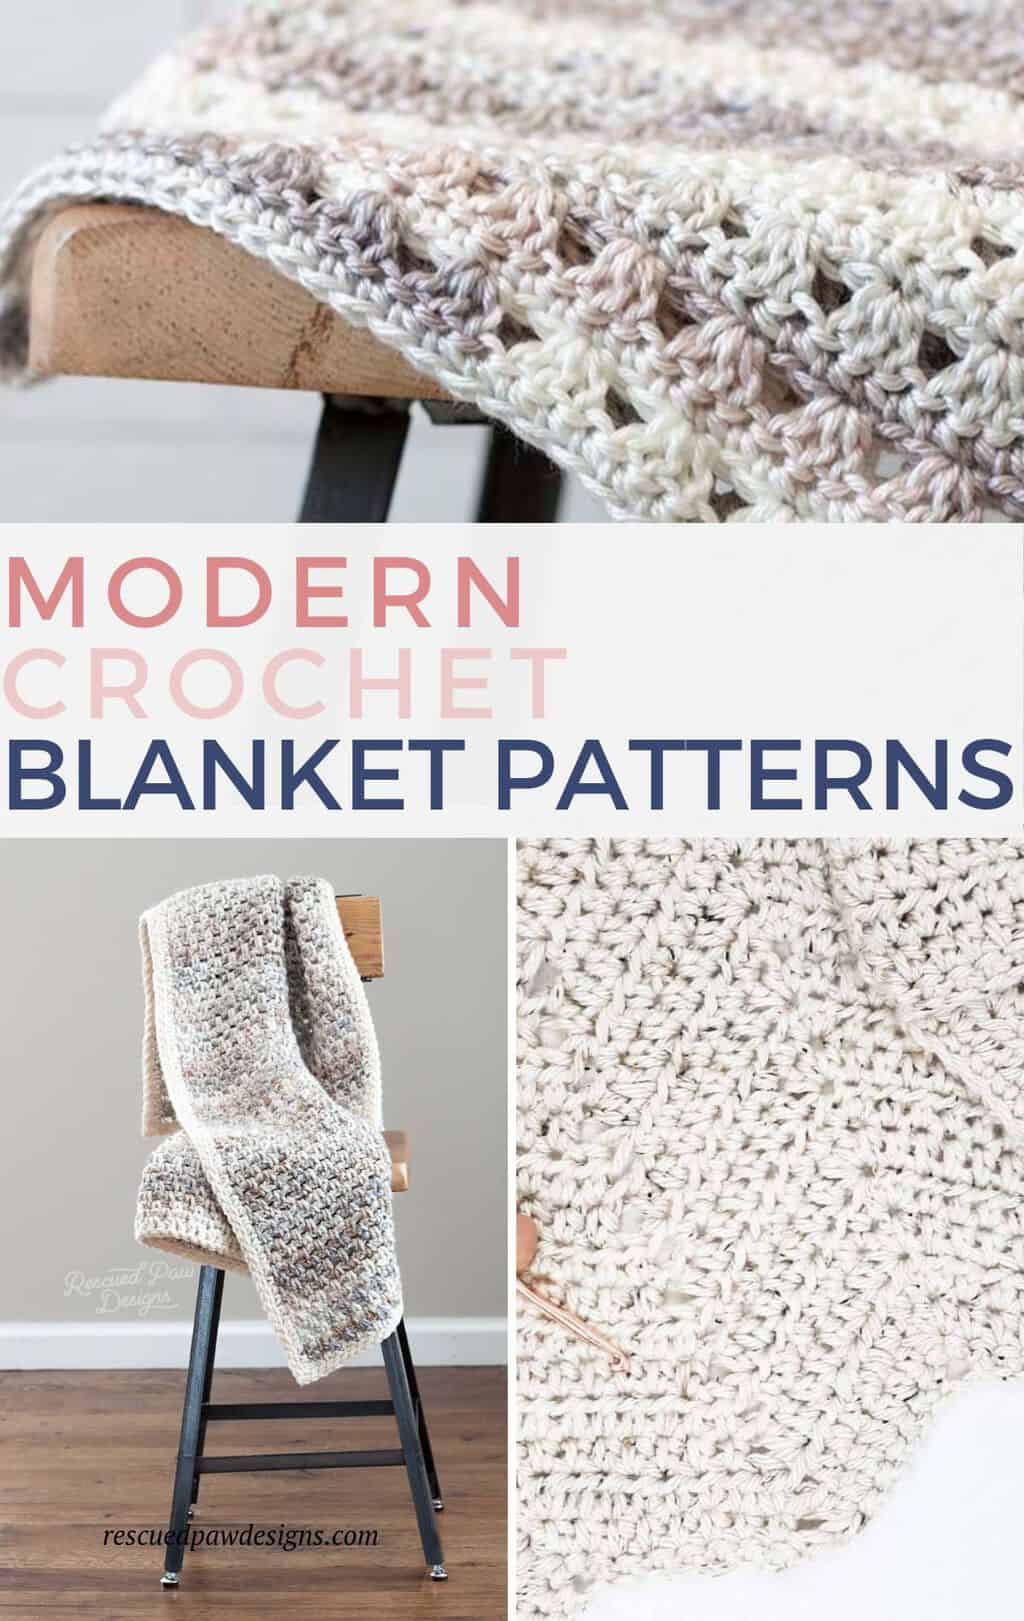 Modern Crochet Blanket Patterns